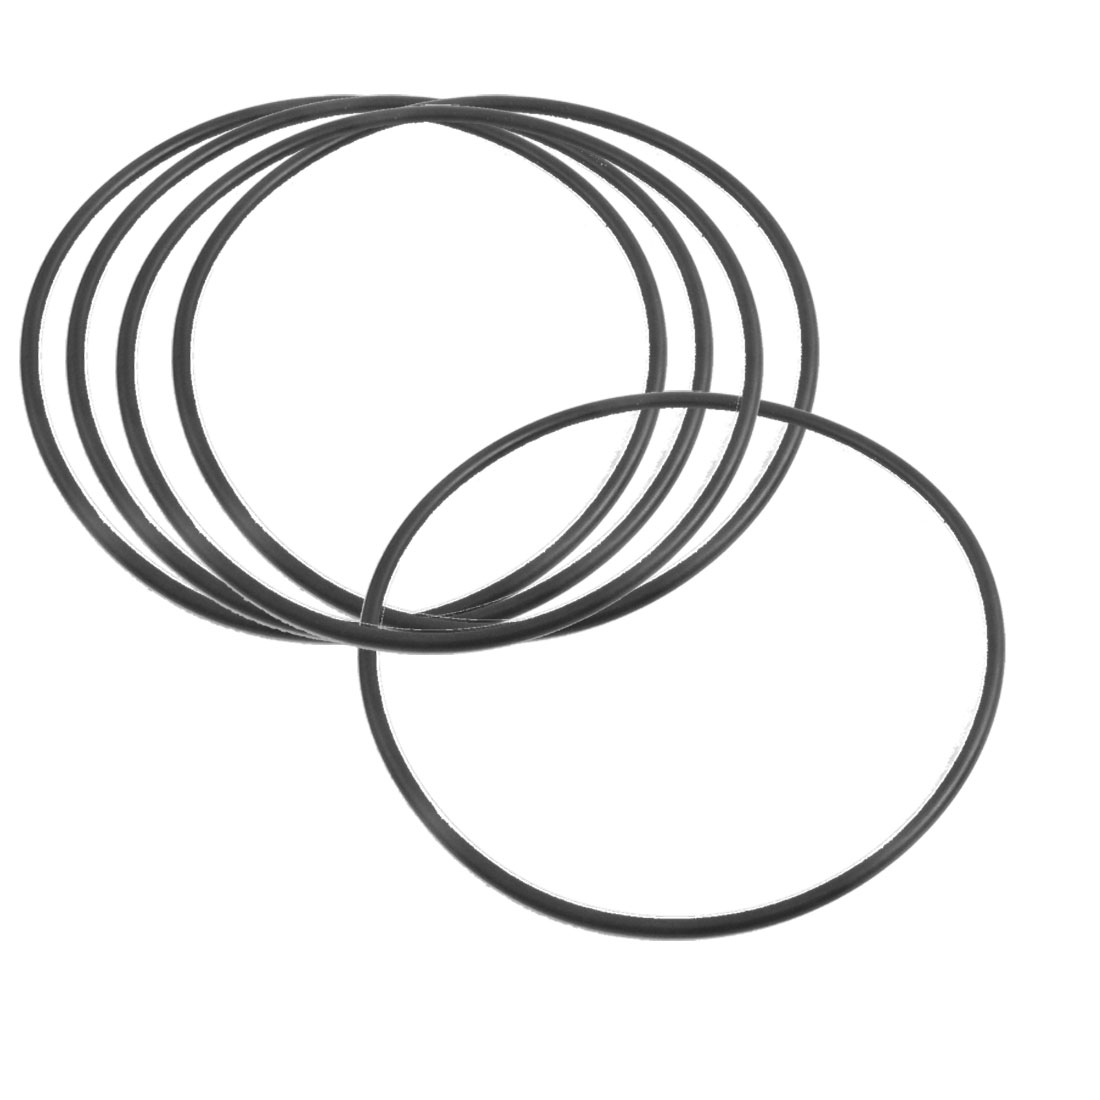 5 Pcs 106mm x 3.5mm Black Silicone O Rings Oil Seals Gaskets